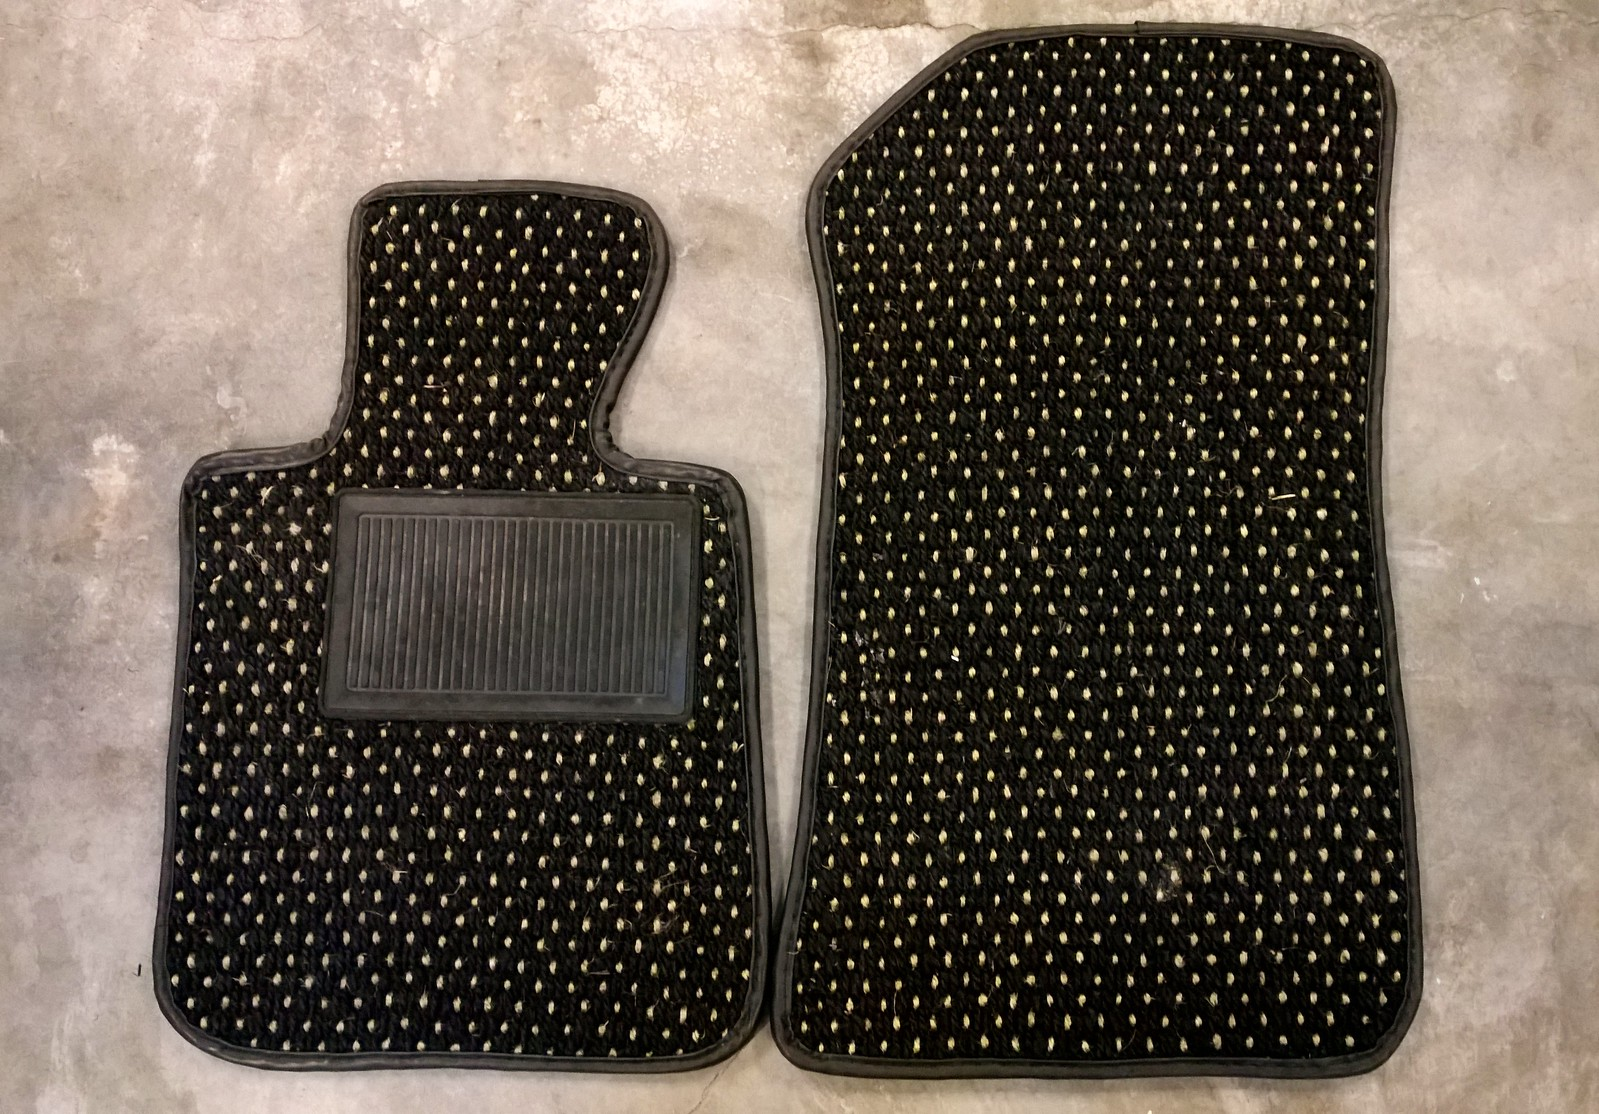 mats mat black porsche four products new two piece herringbone coco noloc or rhd